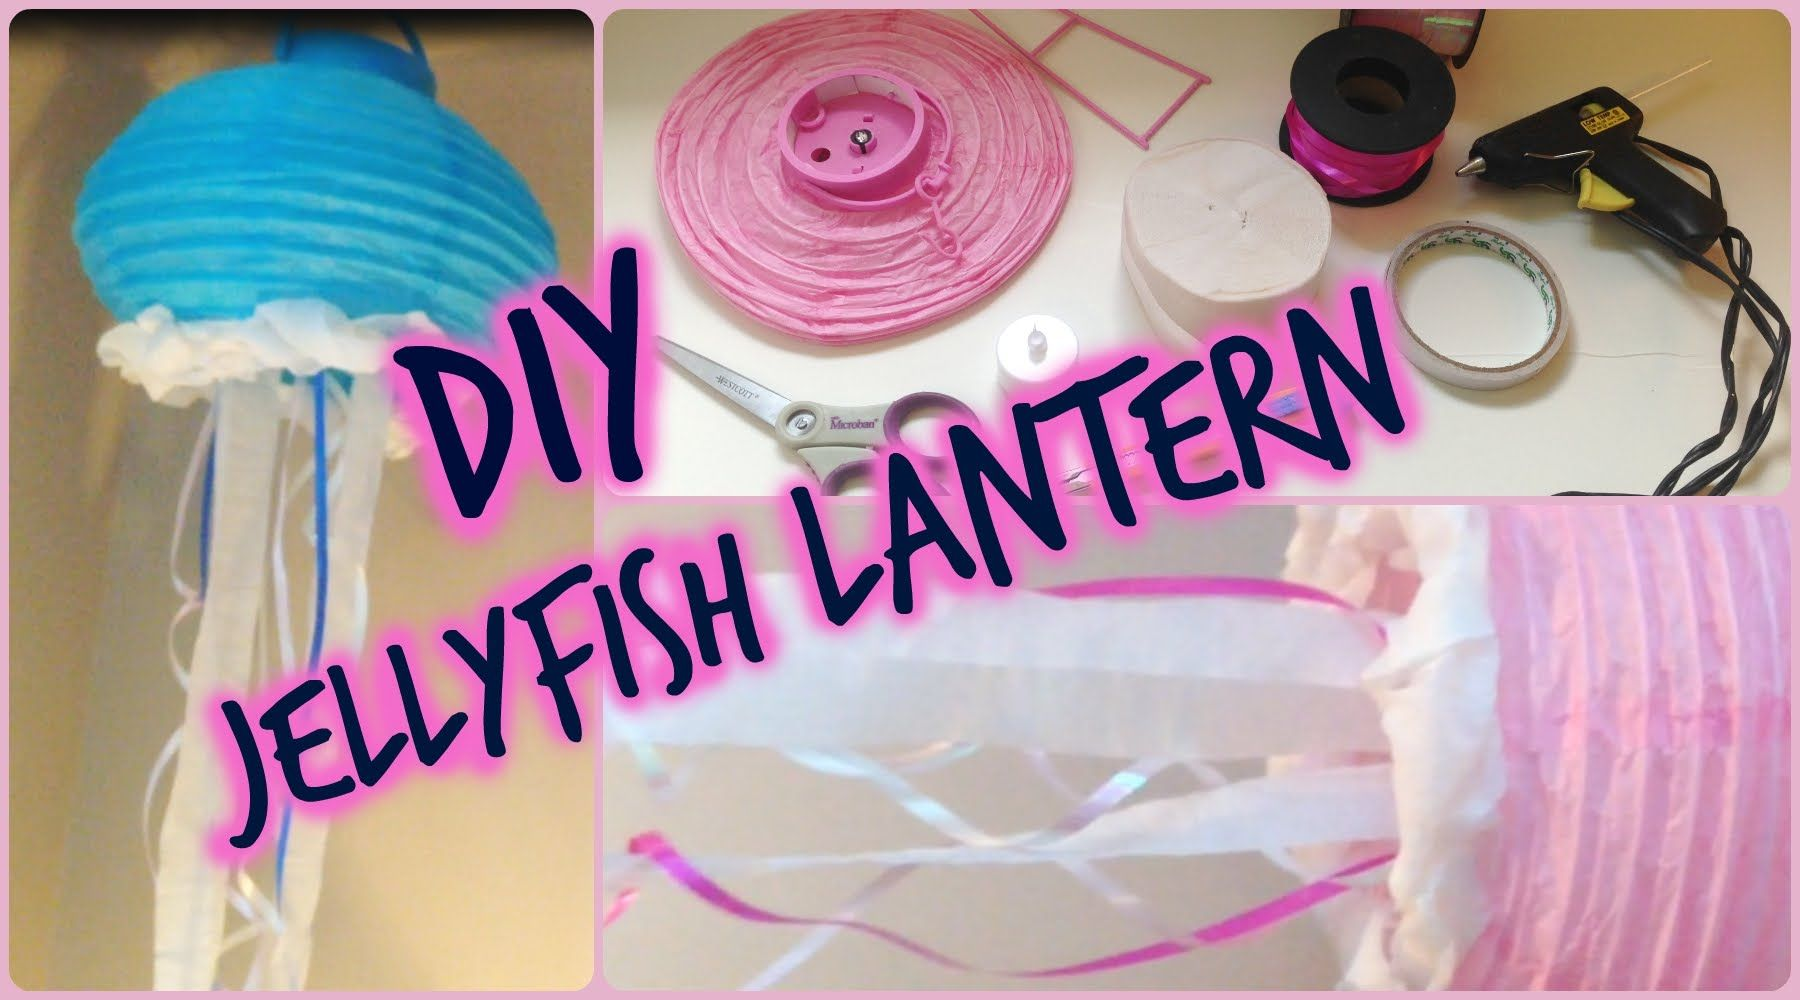 Paper Lantern Jellyfish Simple Diy Jellyfish Lanterns  Noah's Shower  Pinterest  Jellyfish And Review